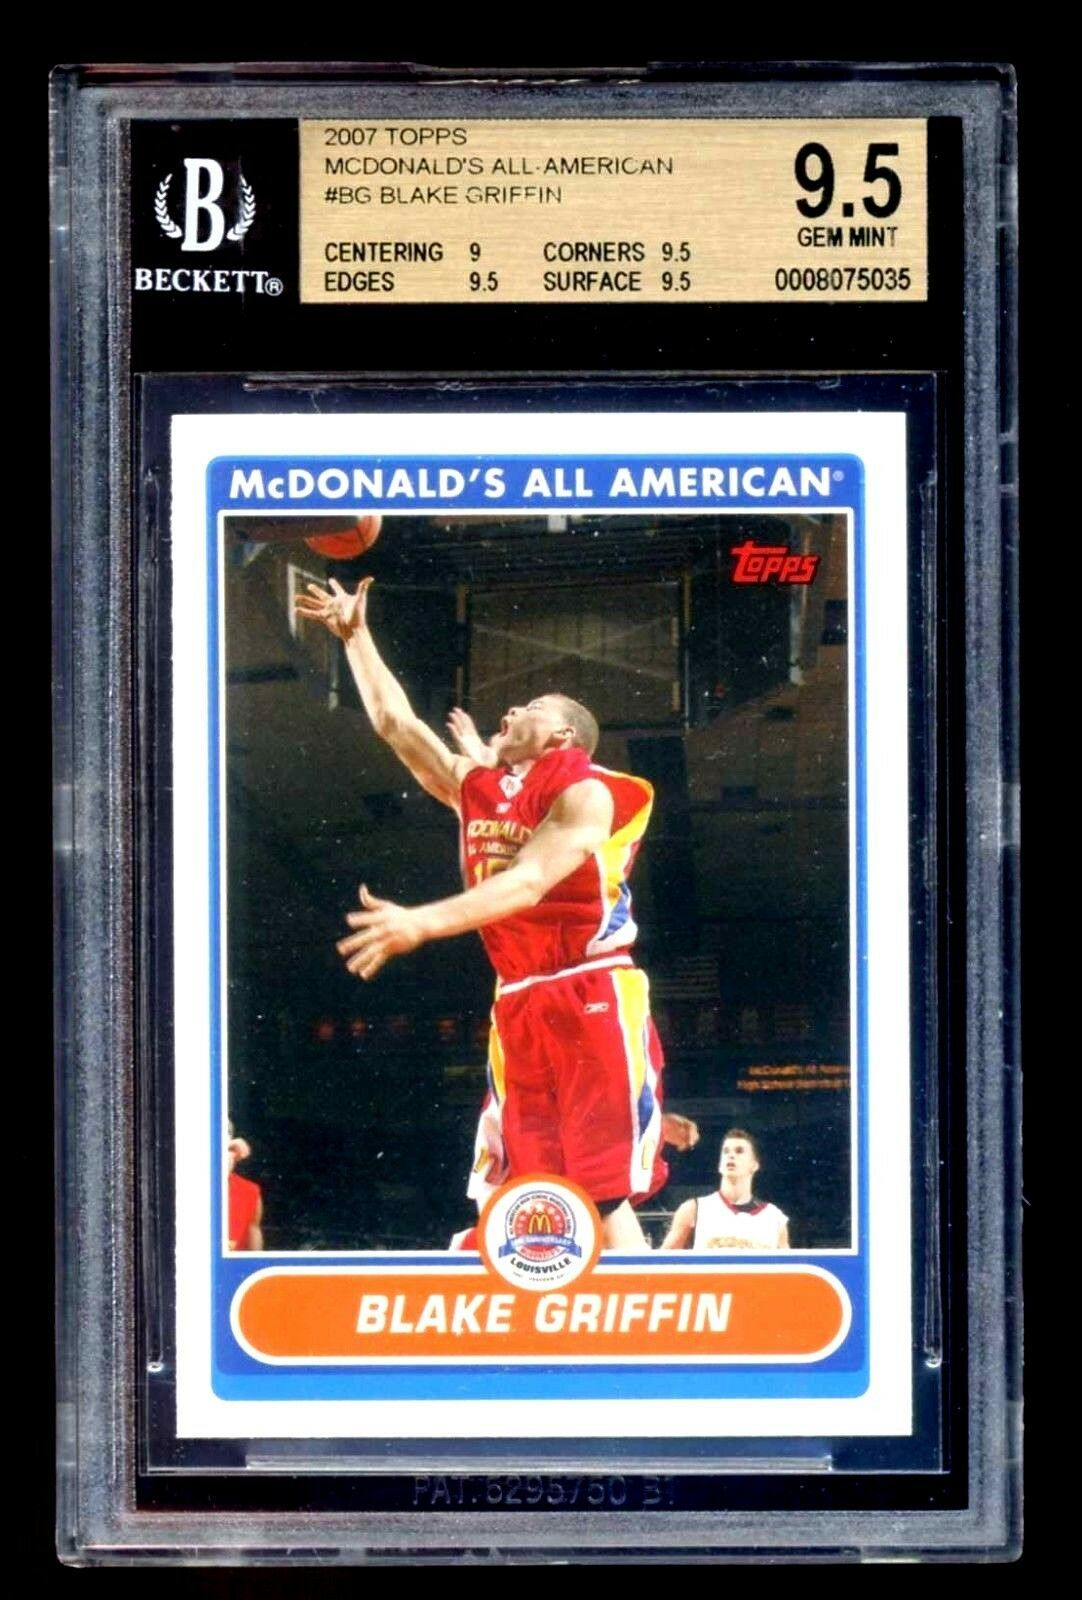 Blake Griffin RC 2007 Topps McDonald's All-American RC GEM BGS 9.5-Cippers F RC image 7